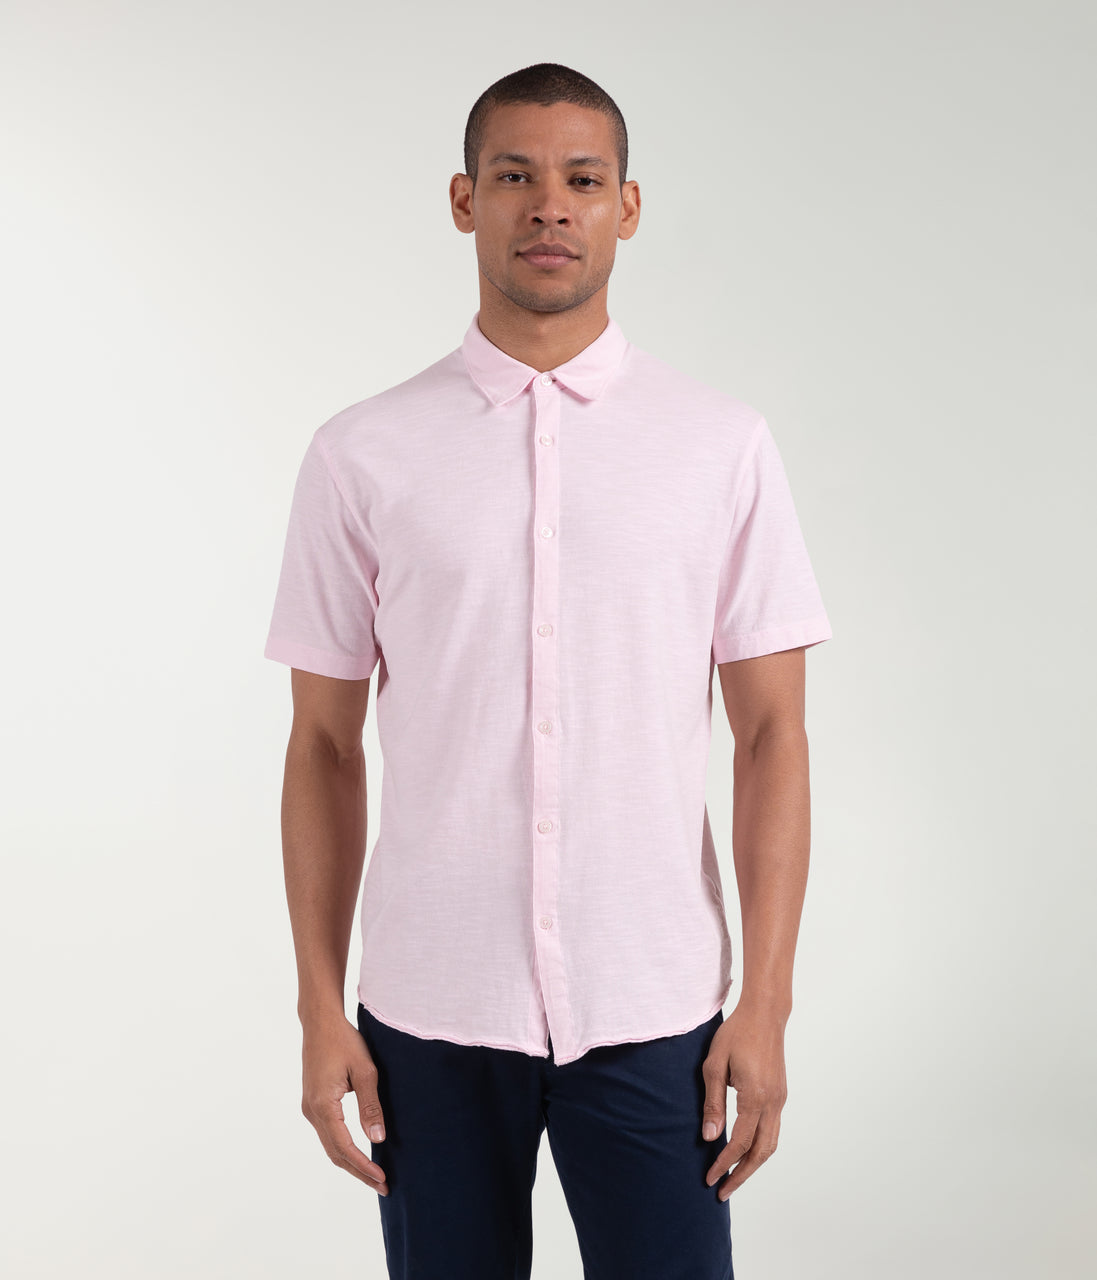 Soft Slub Jersey On-Point Shirt - Cherry Blossom - Good Man Brand - Soft Slub Jersey On-Point Shirt - Cherry Blossom